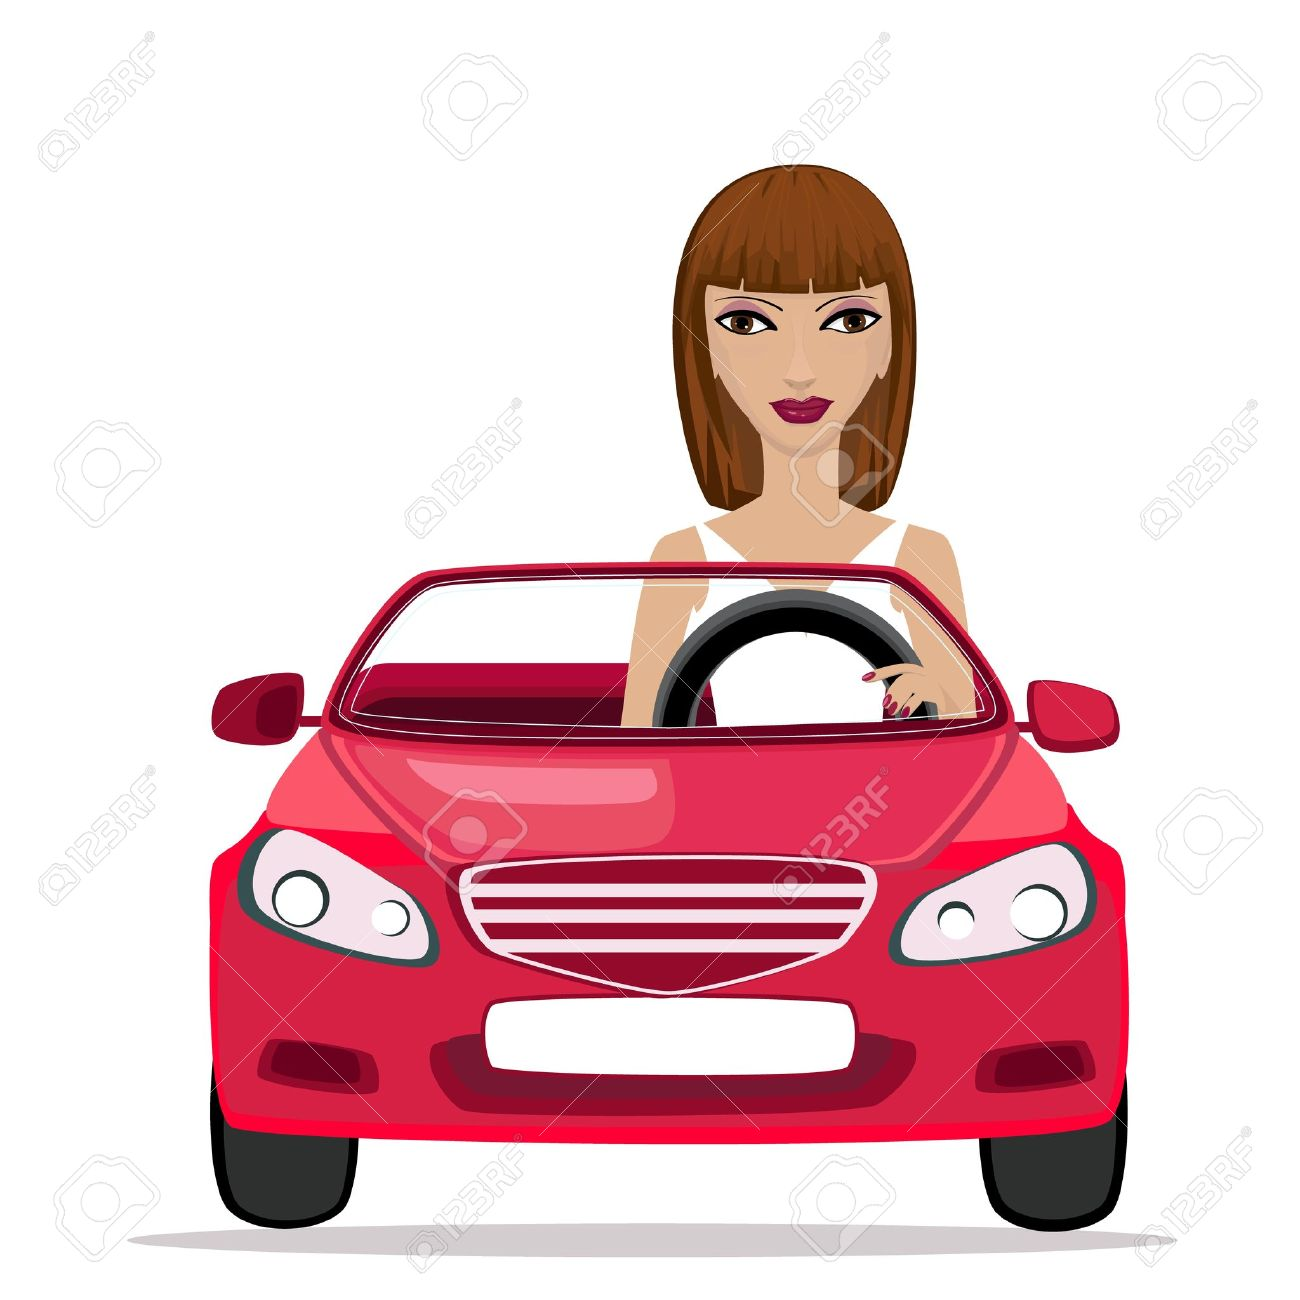 Image result for free clip art cartoon woman in a car